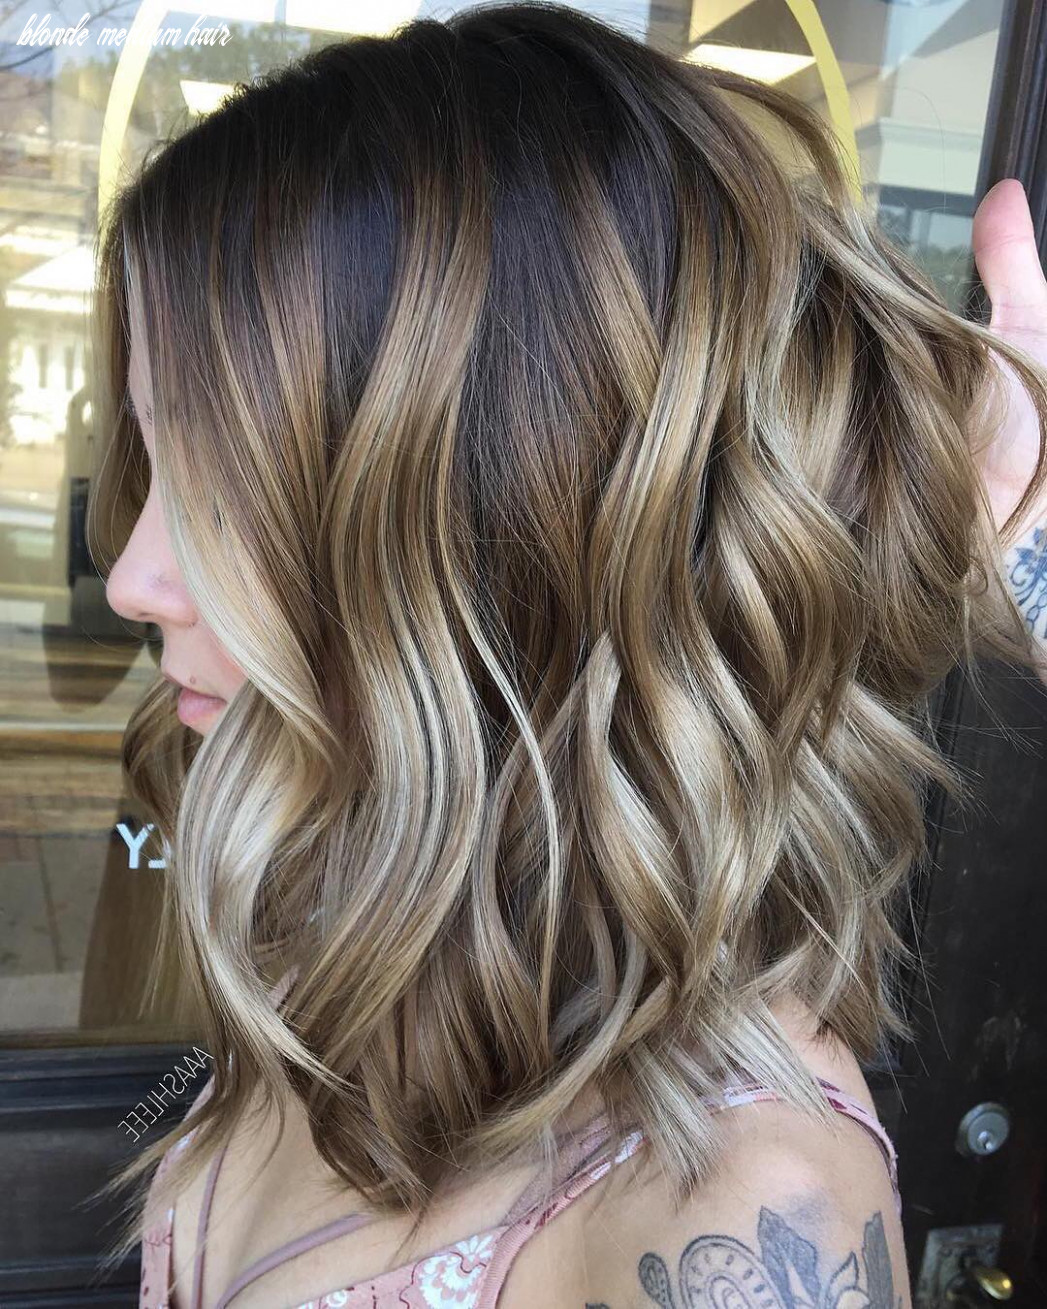 8 Ombre Balayage Hairstyles for Medium Length Hair, Hair Color 8